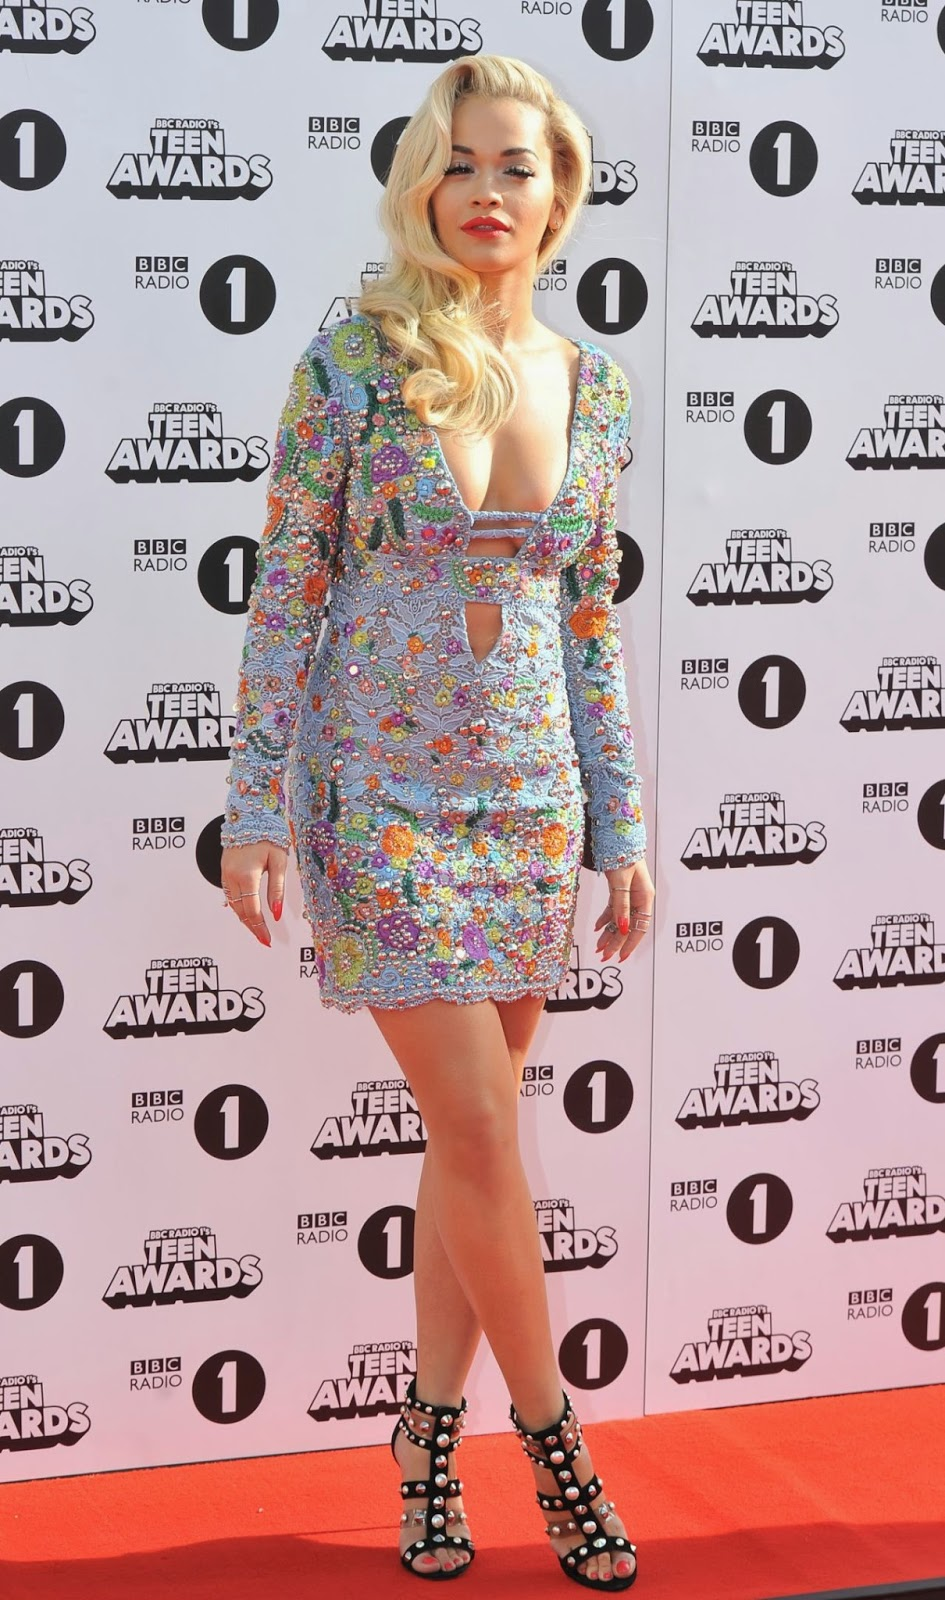 Rita Ora in a low-cut mini dress at the 2014 BBC Radio One Teen Awards in London